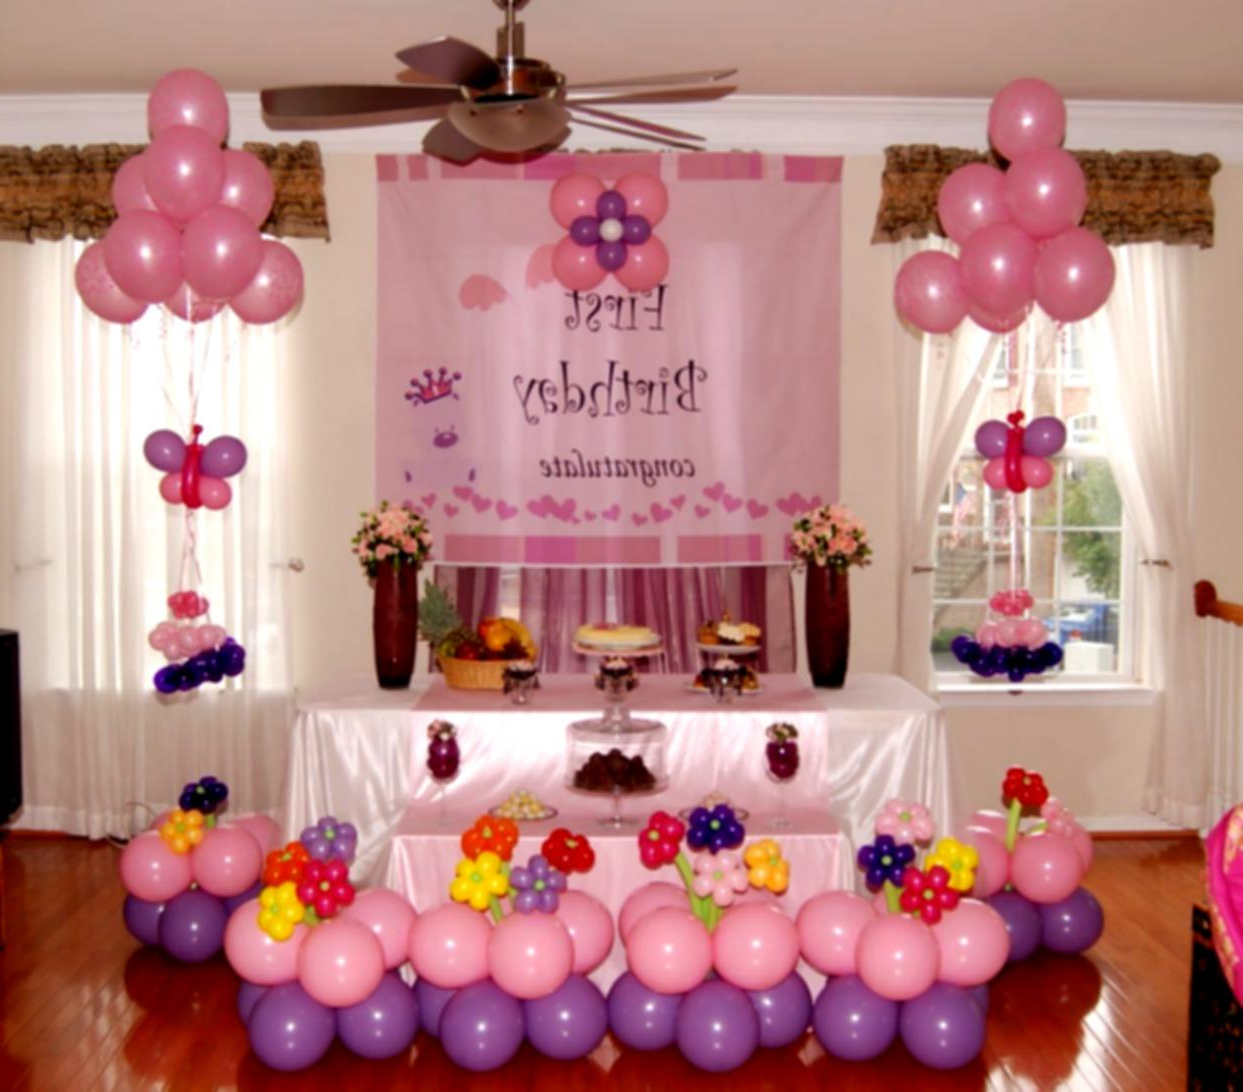 background decoration for birthday party at home ; background-decoration-for-birthday-party-at-home-8